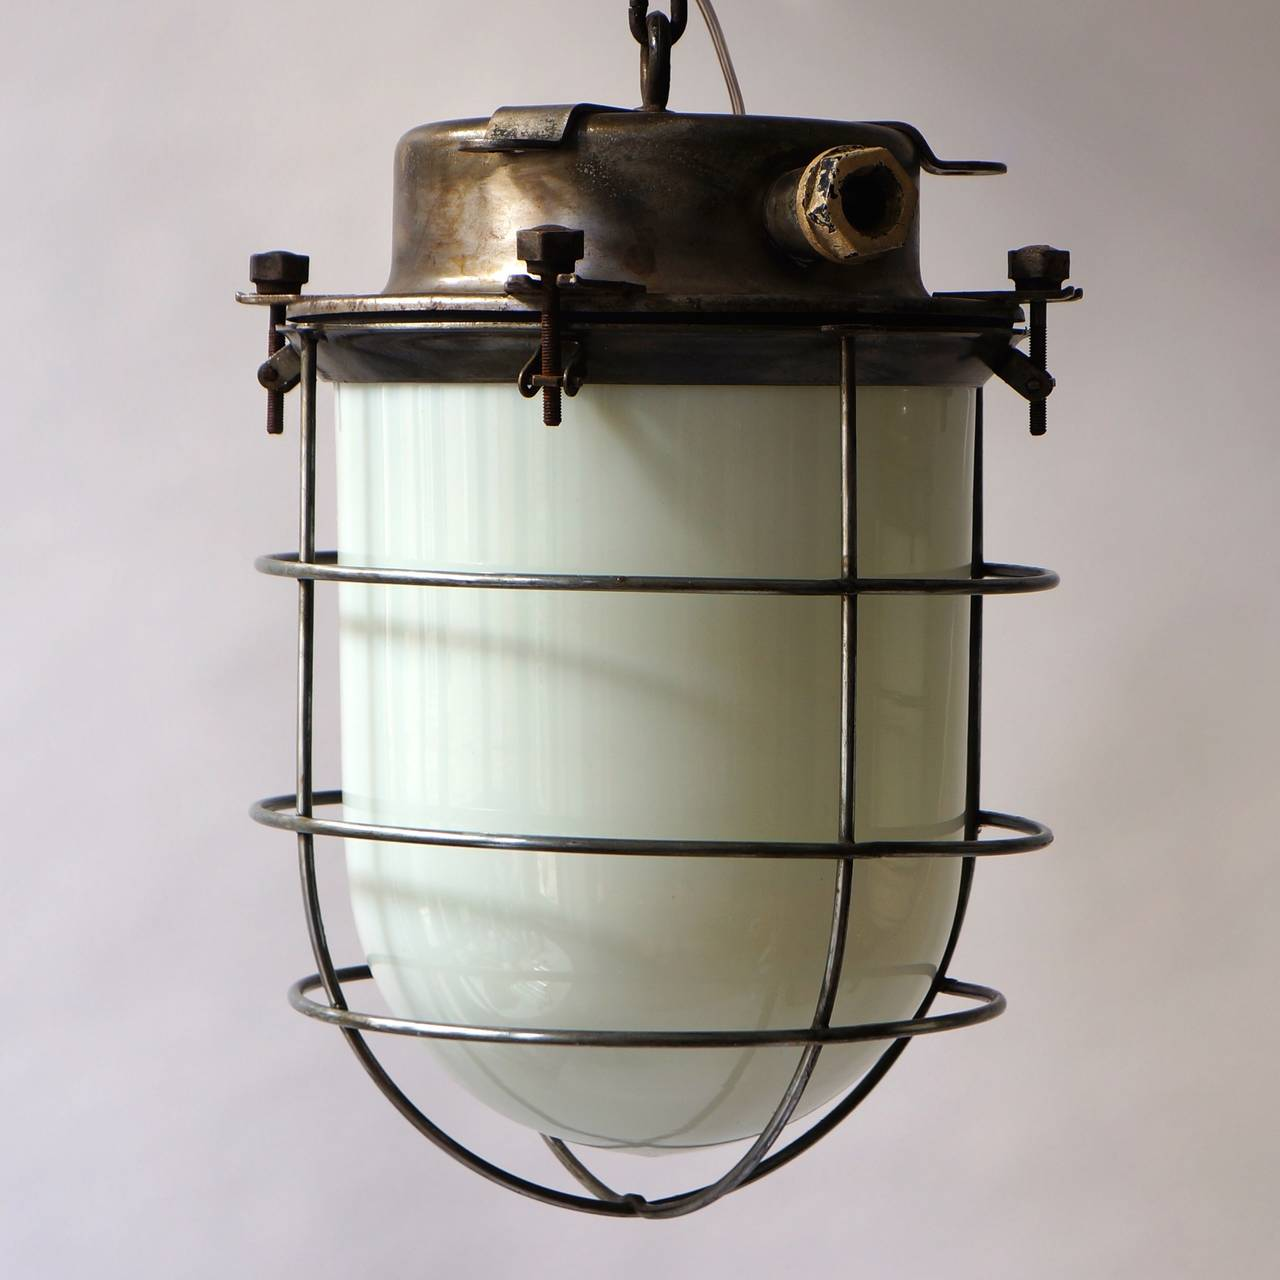 Four Vintage Industrial Hanging Lamps For Sale 1